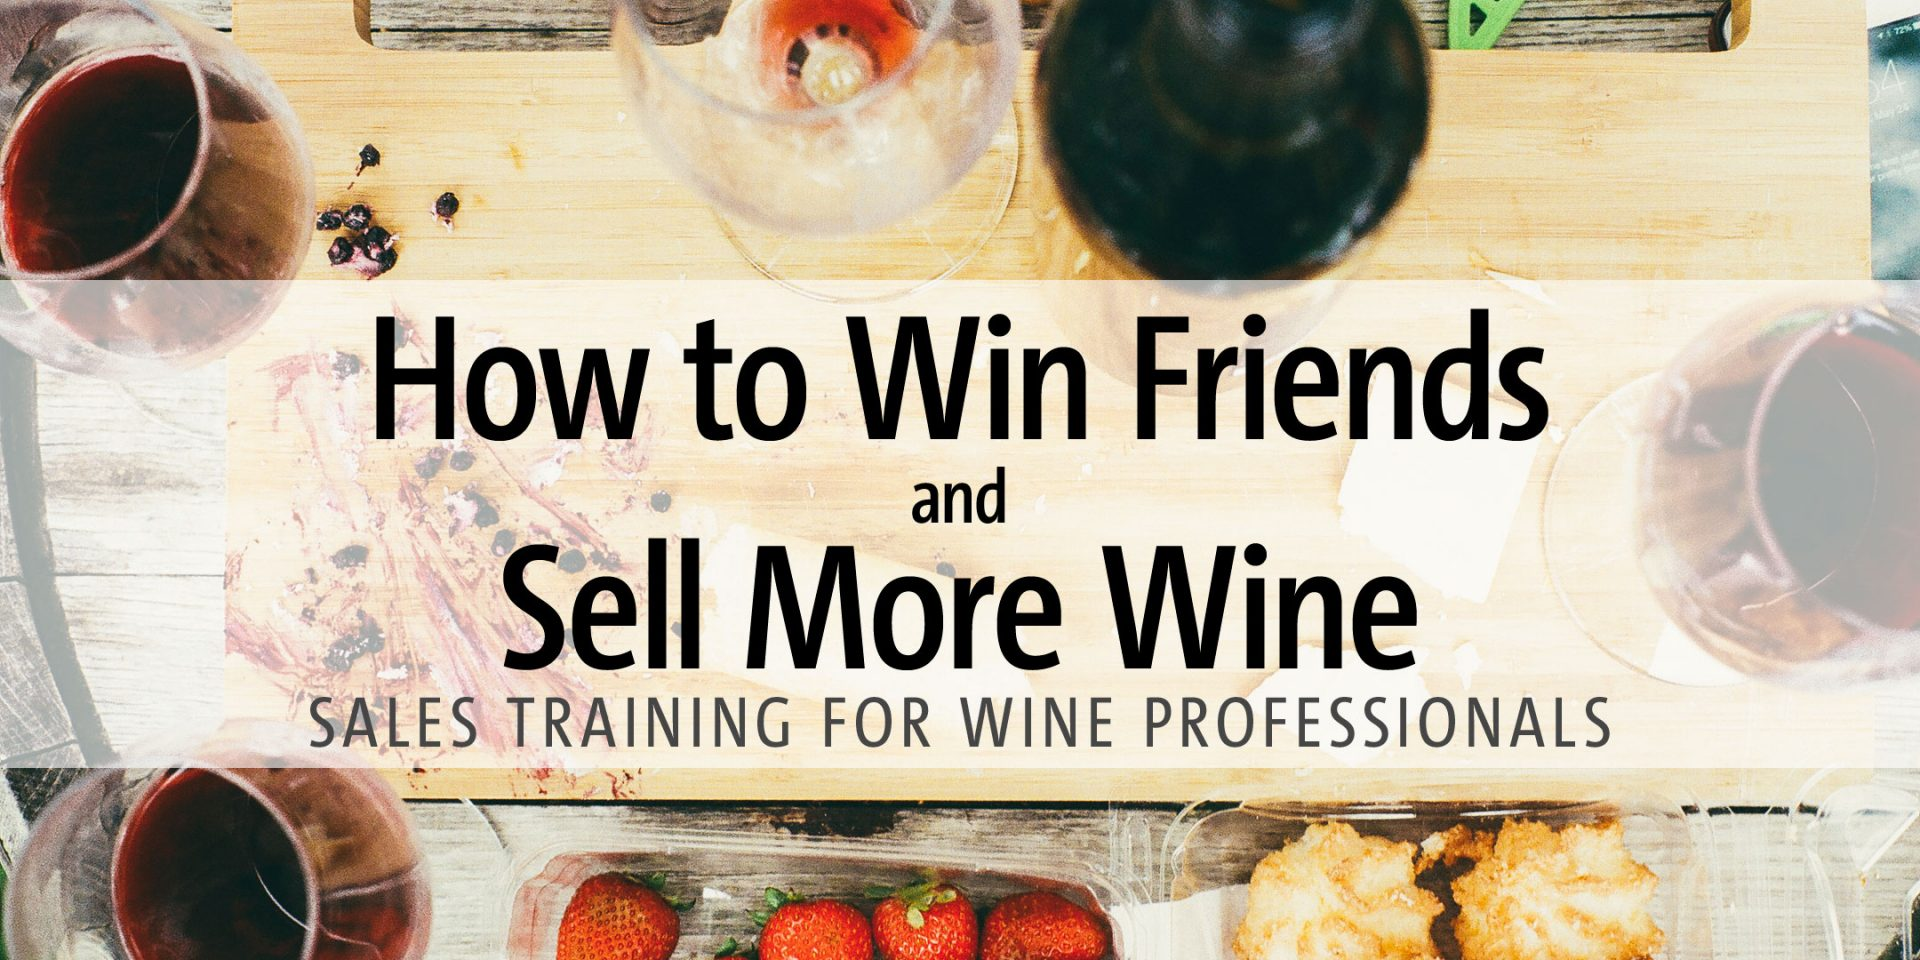 How to Win Friends, Sell More Wine